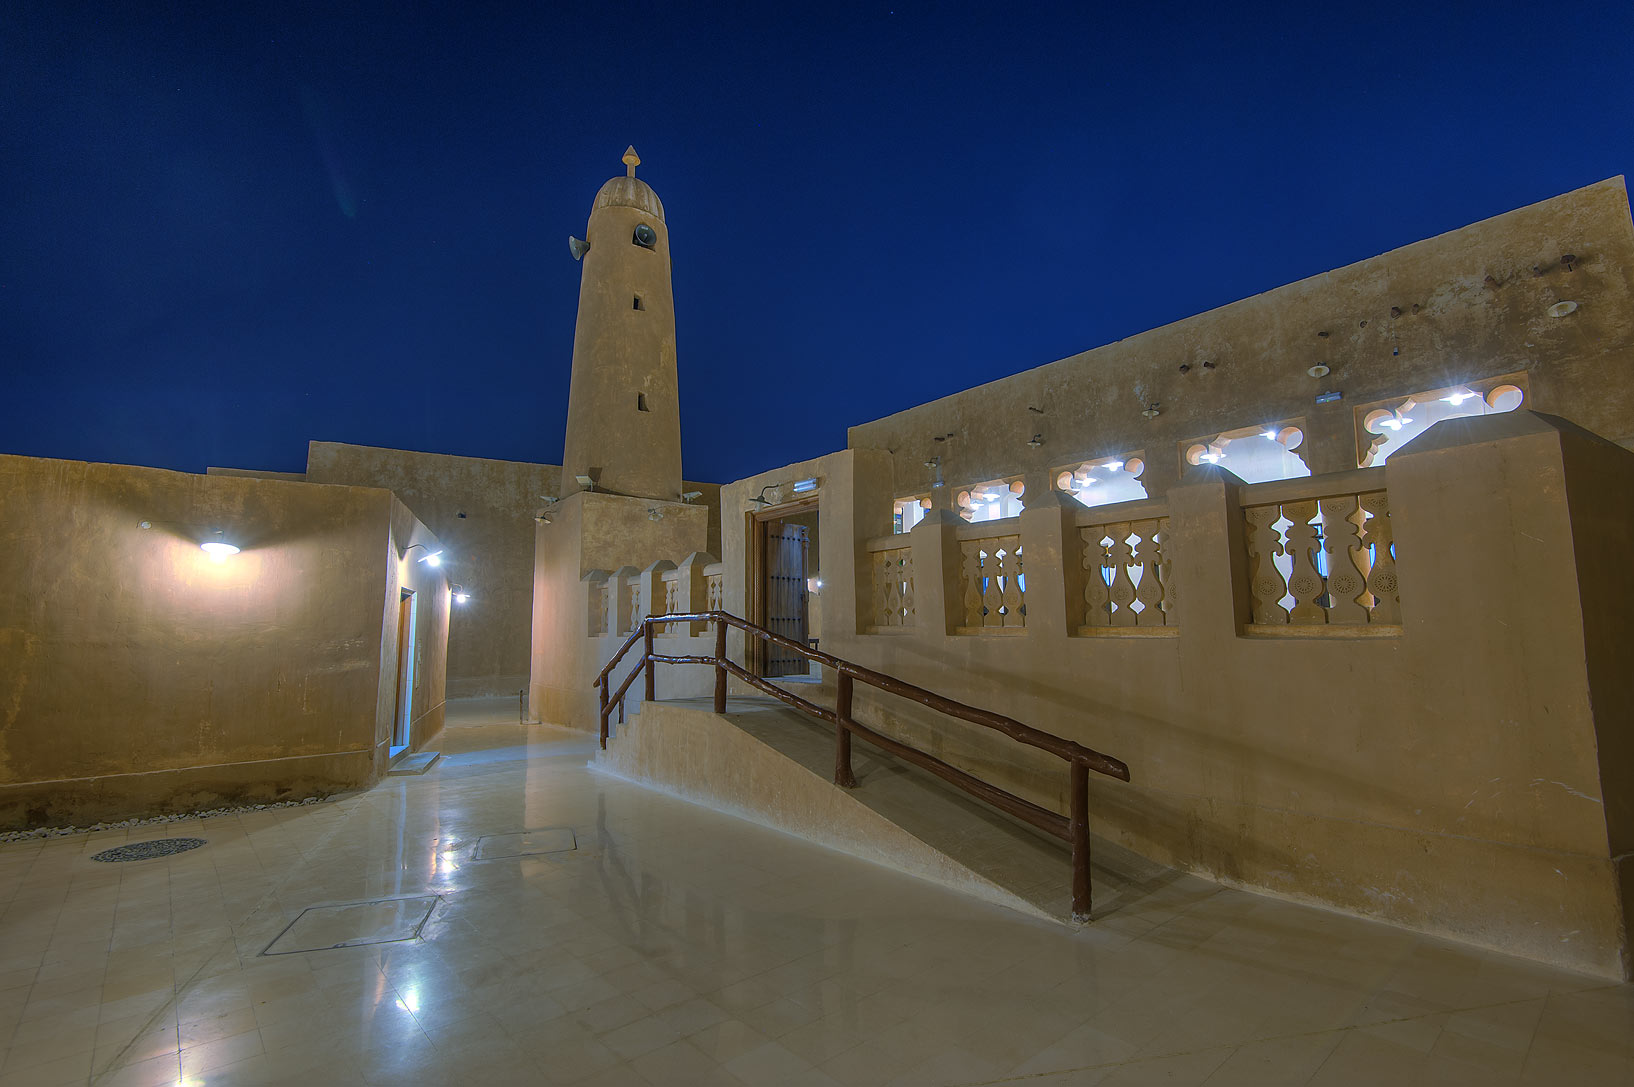 Minaret of a mosque in Al Wakra Heritage Village (Souq Waqif in Al Wakrah). Qatar